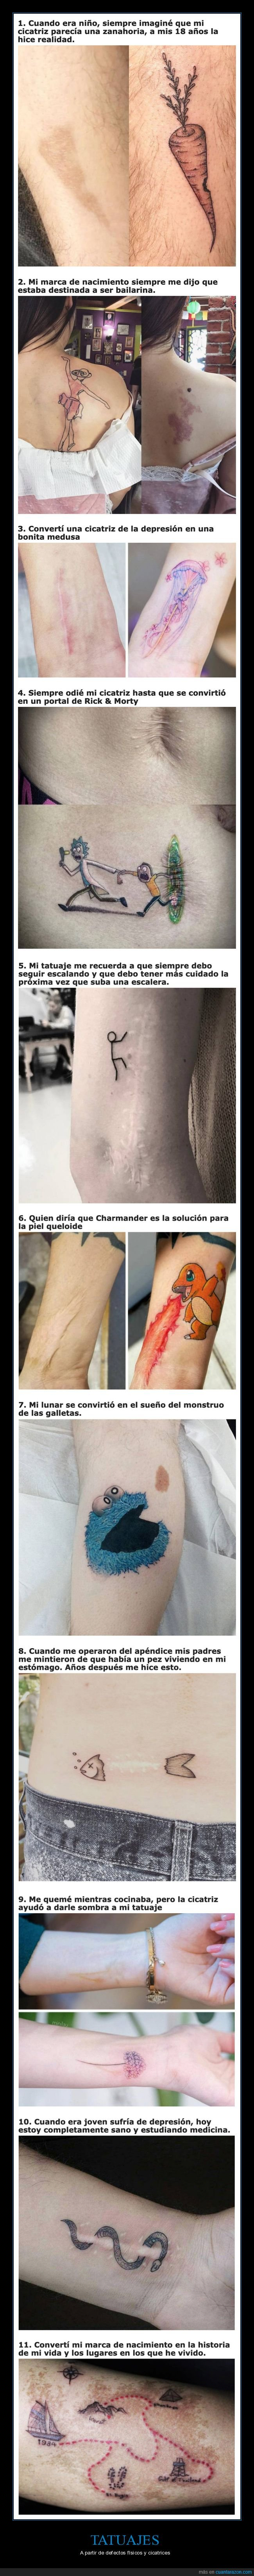 cicatrices,defectos físicos,tatuajes